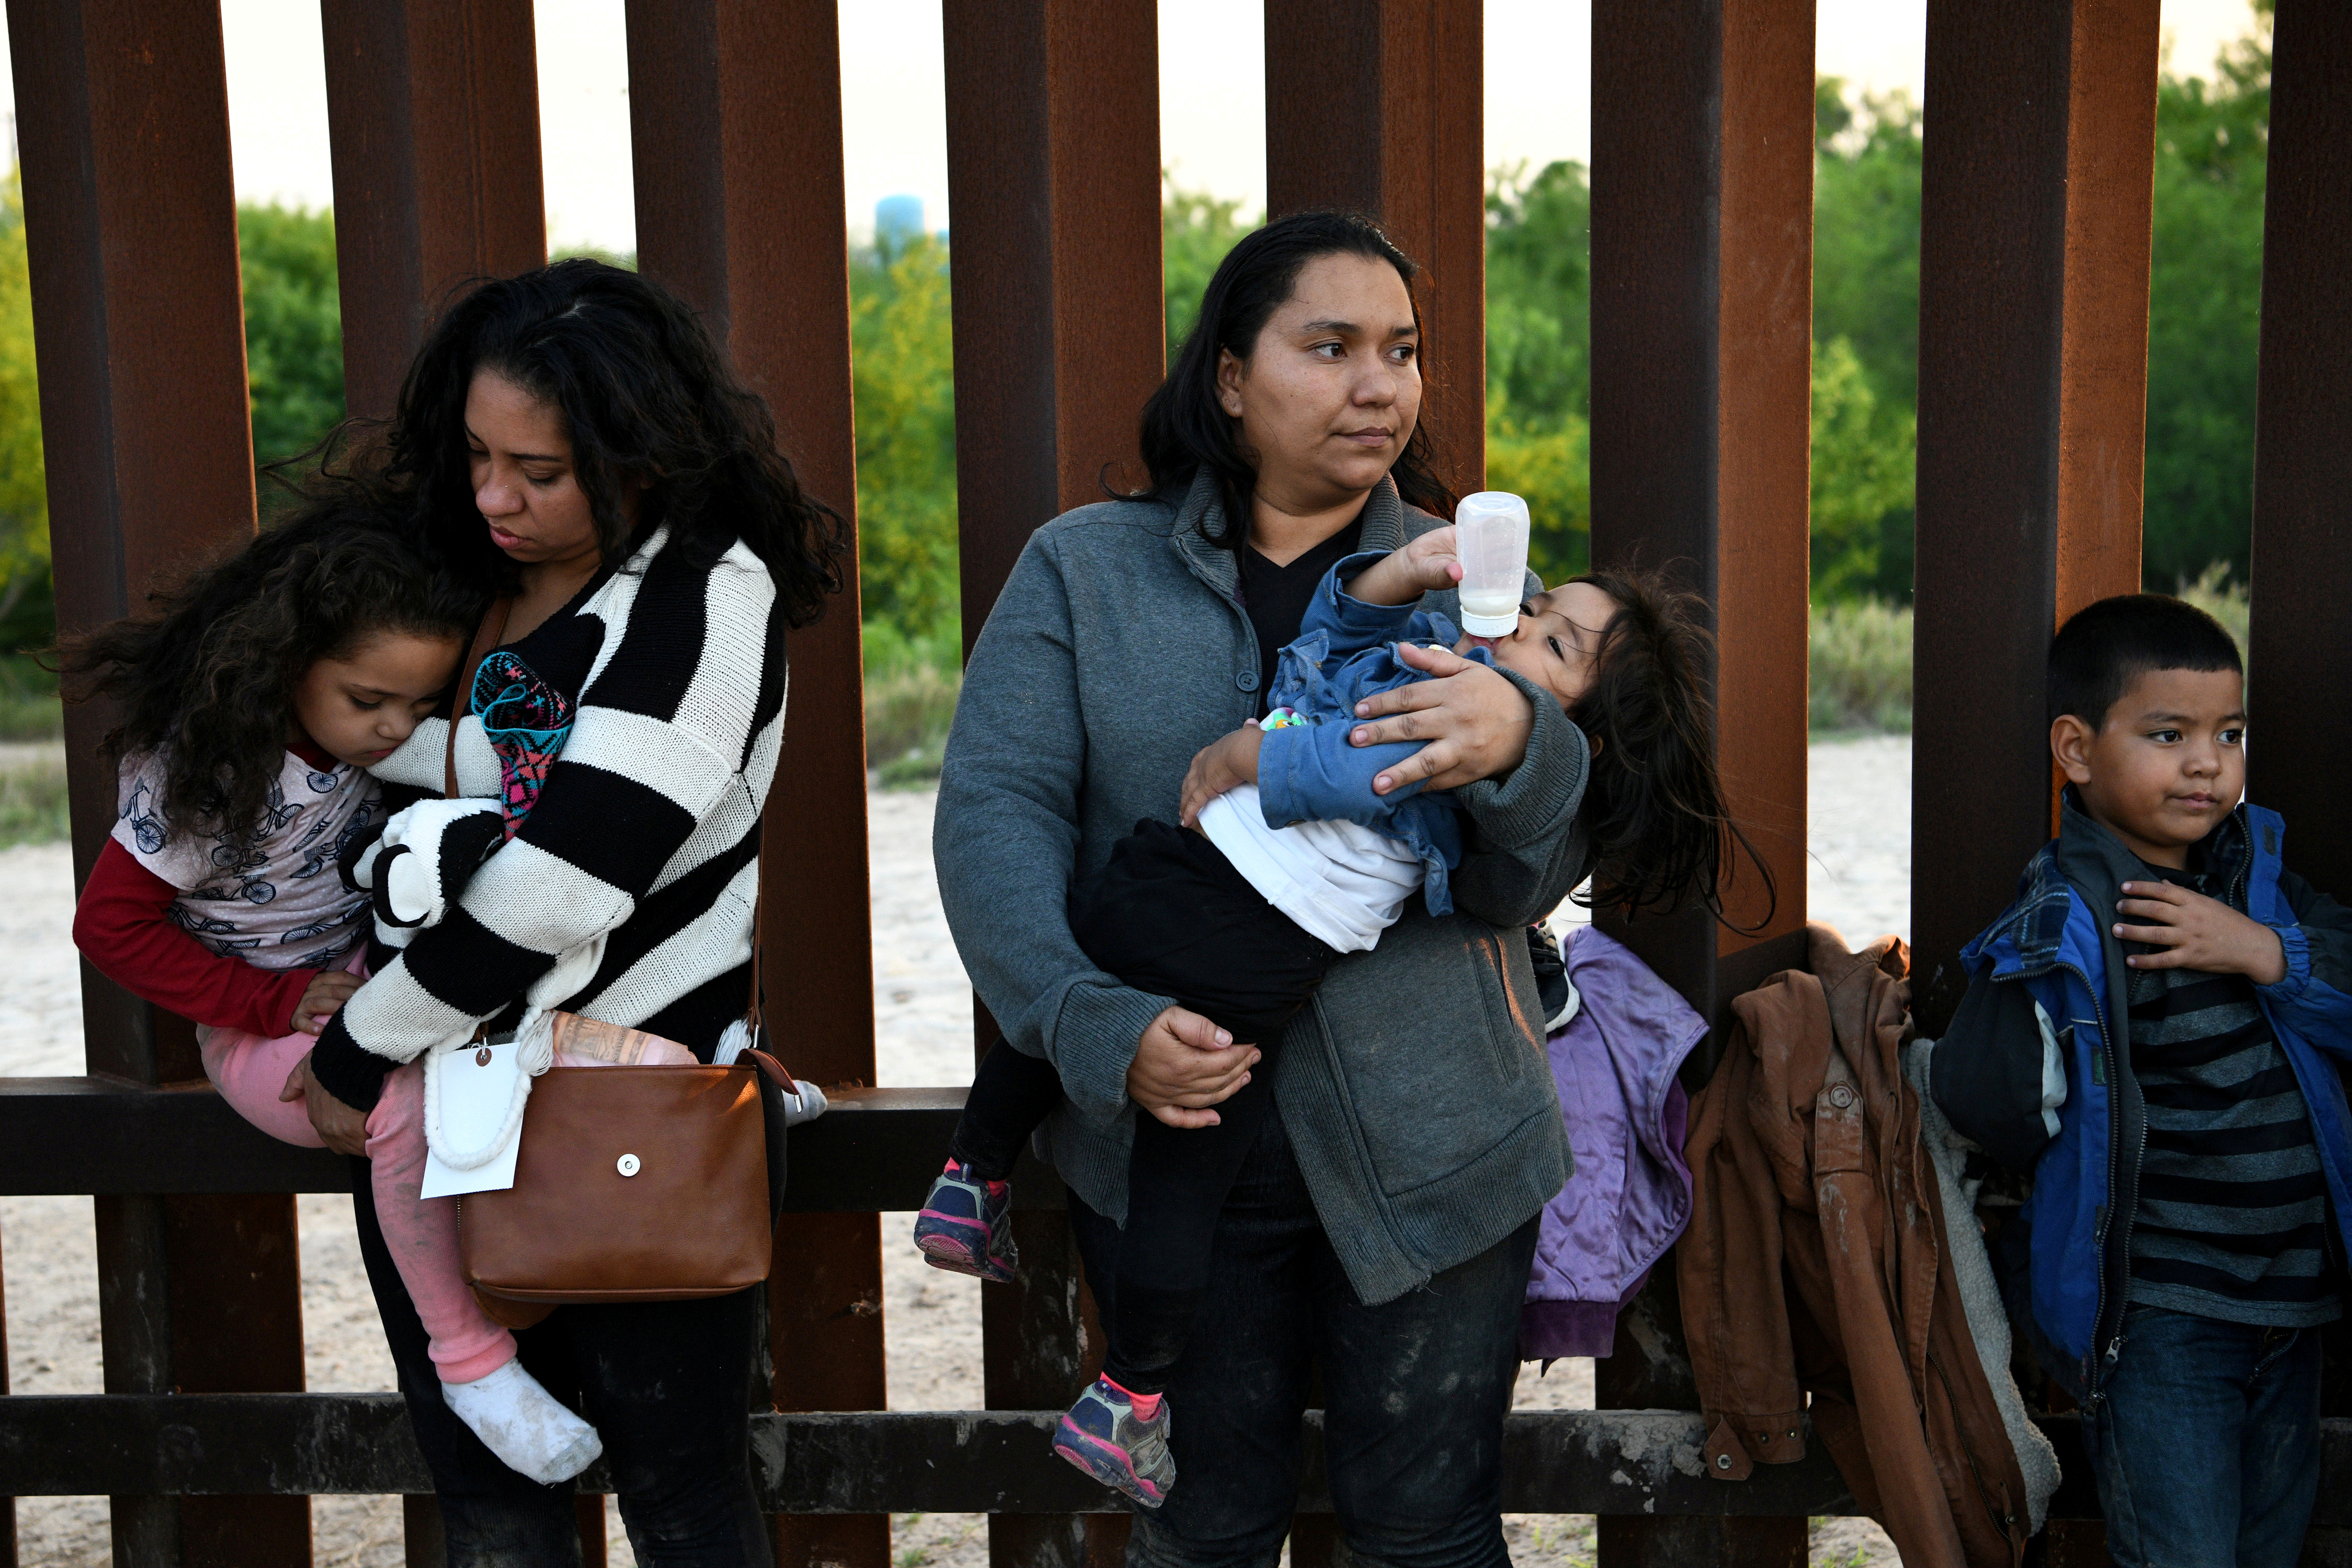 FILE PHOTO: Central American migrants turn themselves in to U.S. Border Patrol as they seek asylum after illegally crossing the Rio Grande near Penitas